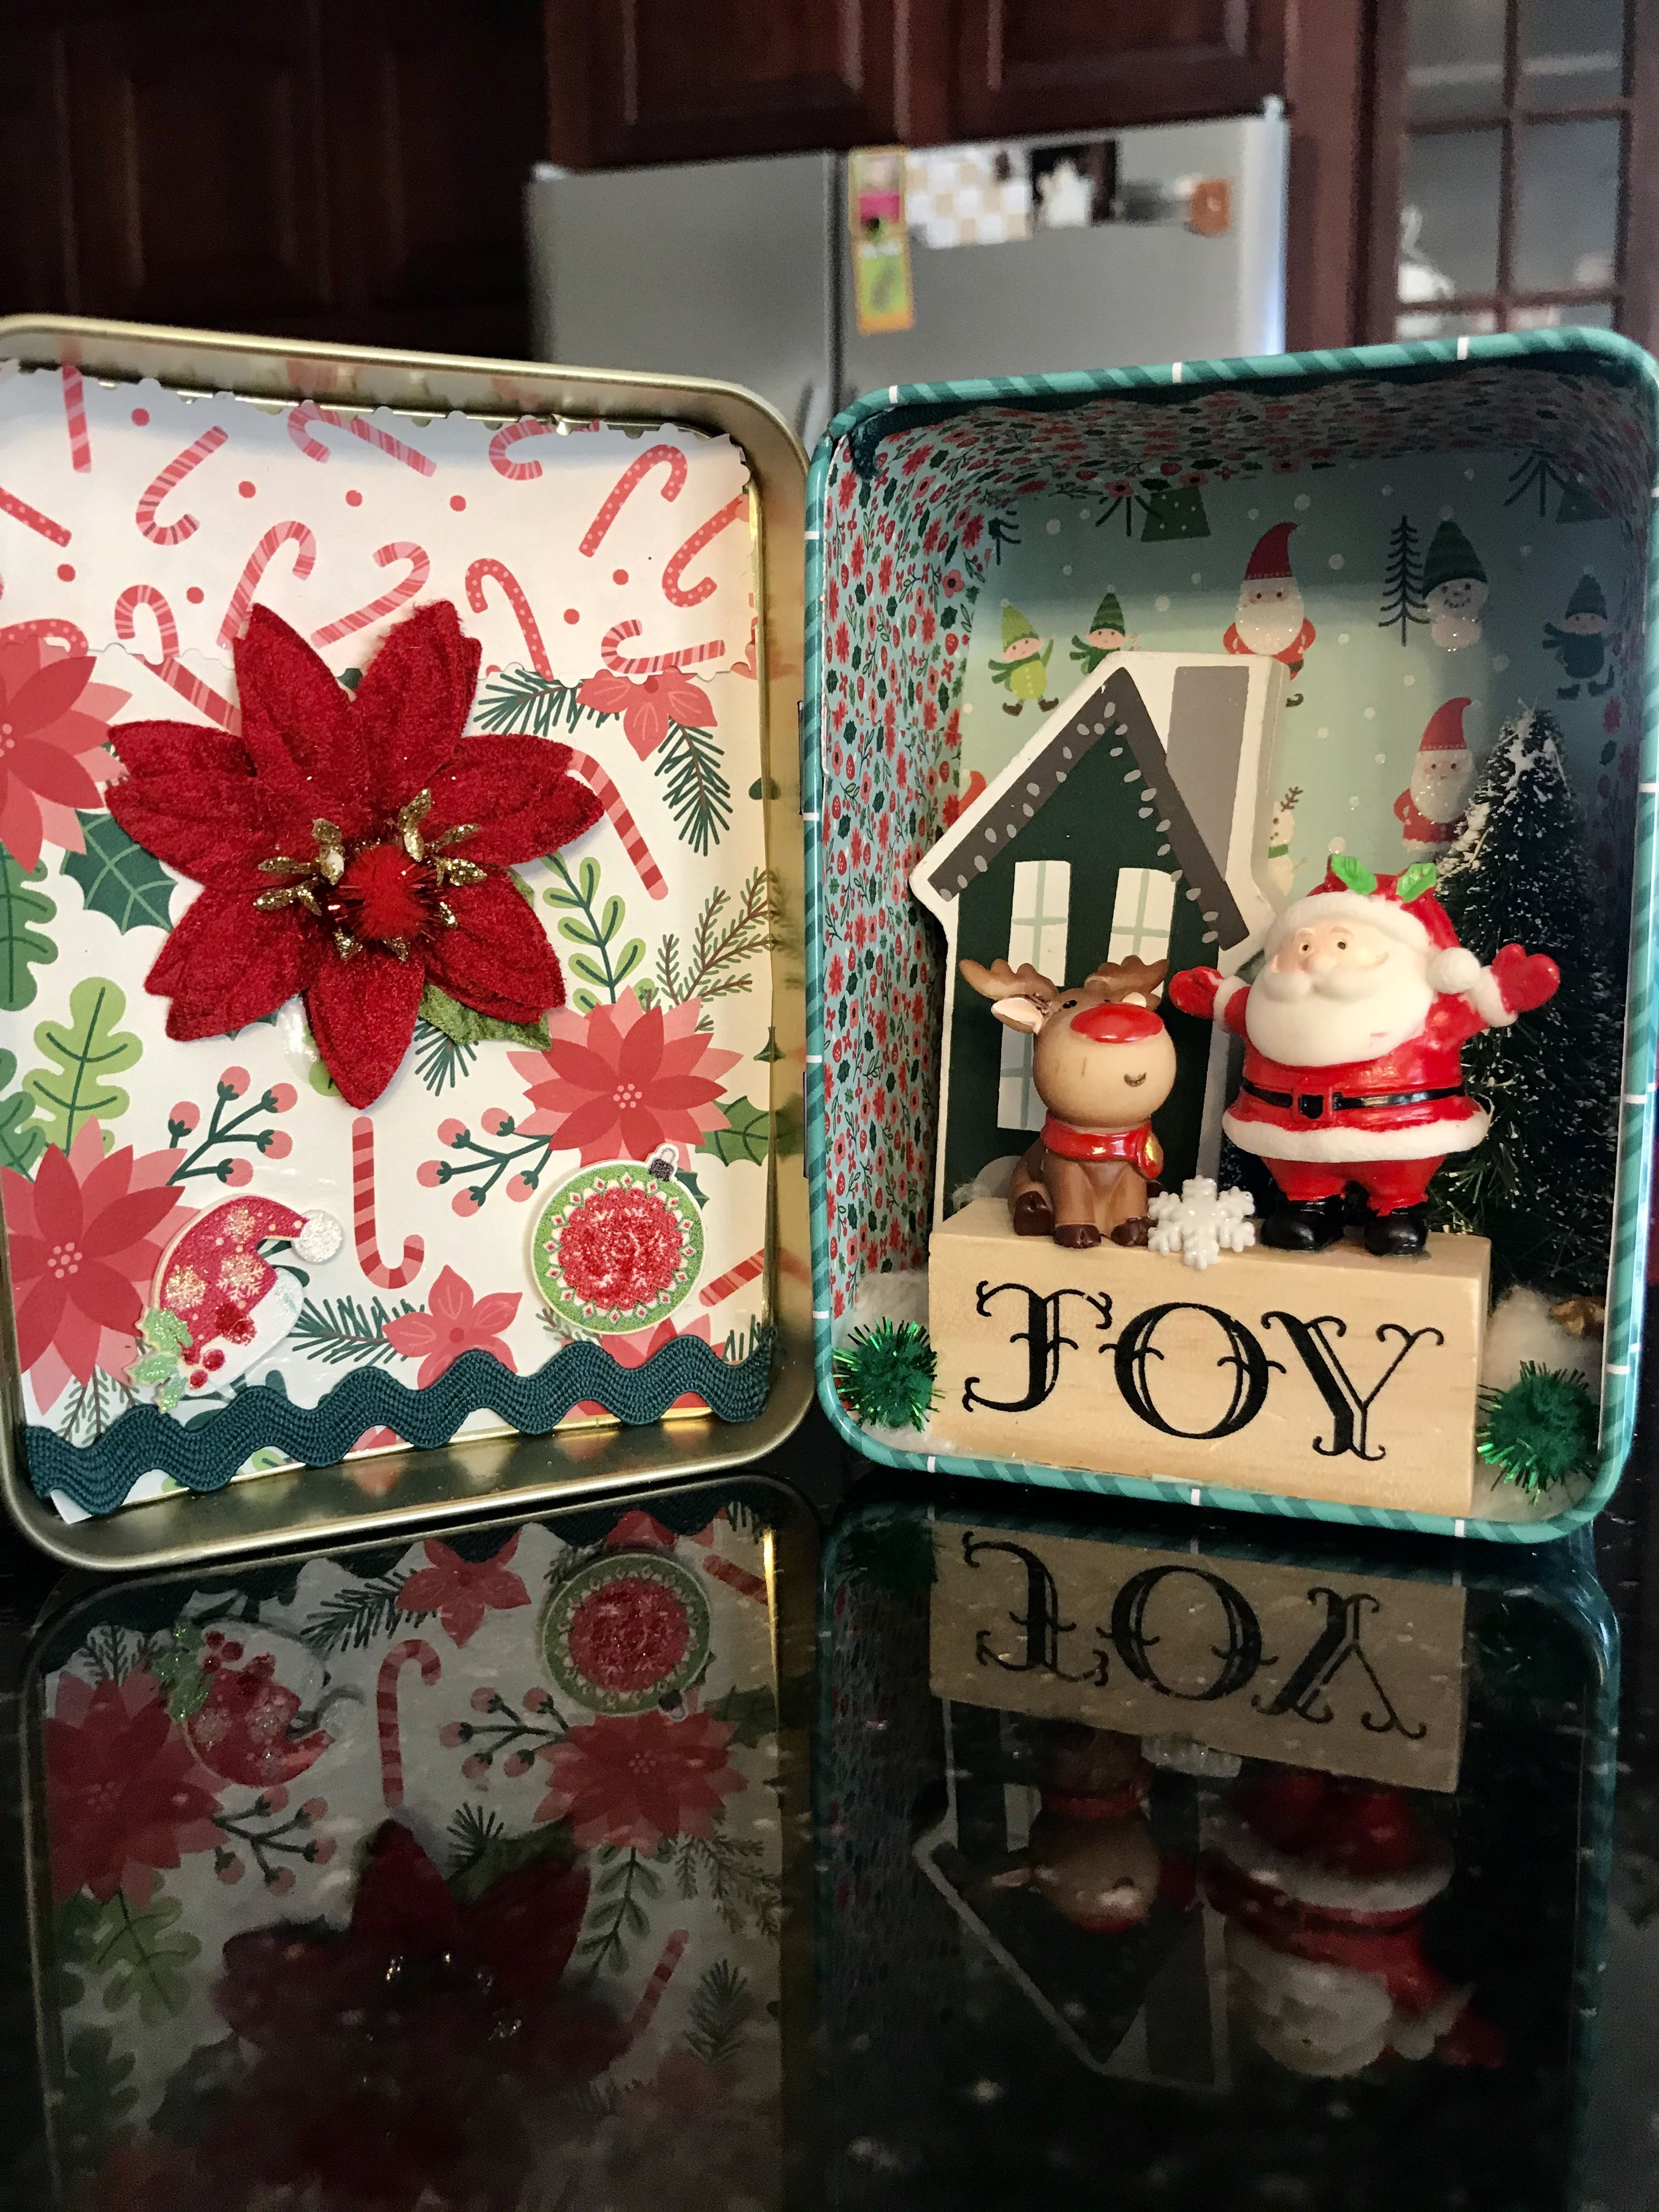 Pin by SNS DESIGNS on Gift Wrapping Ideas | Gifts, Teacher